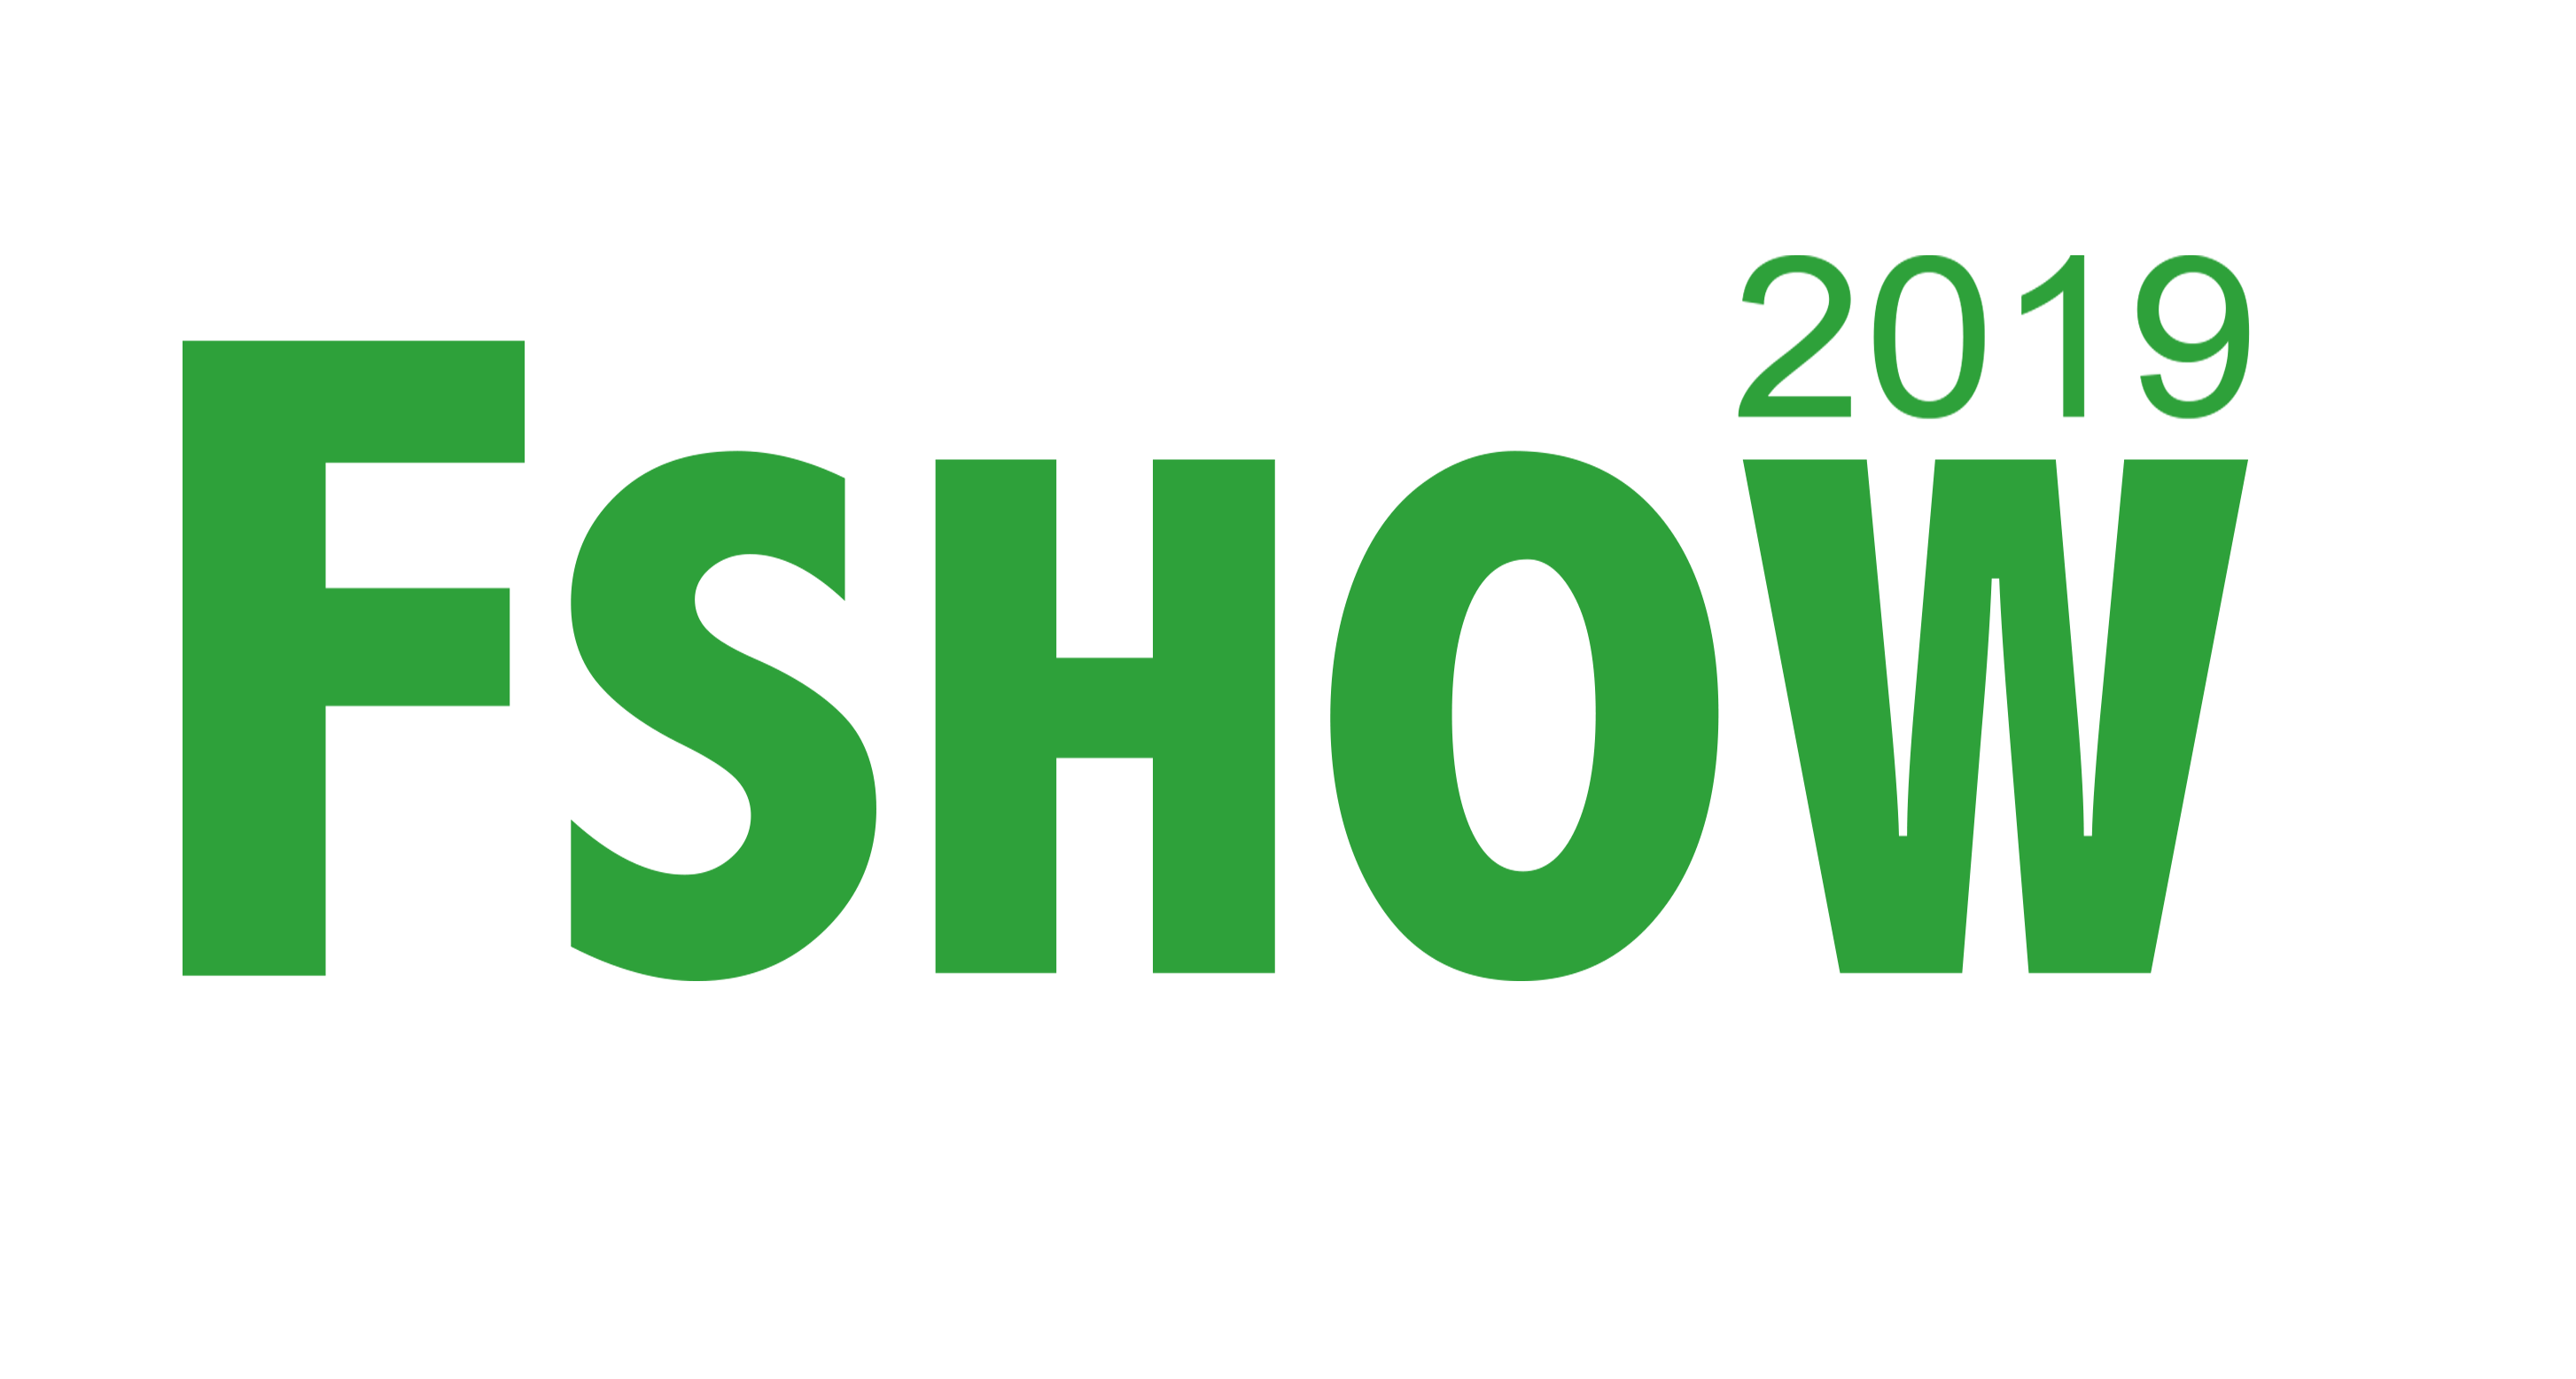 FSHOW2019高清.png